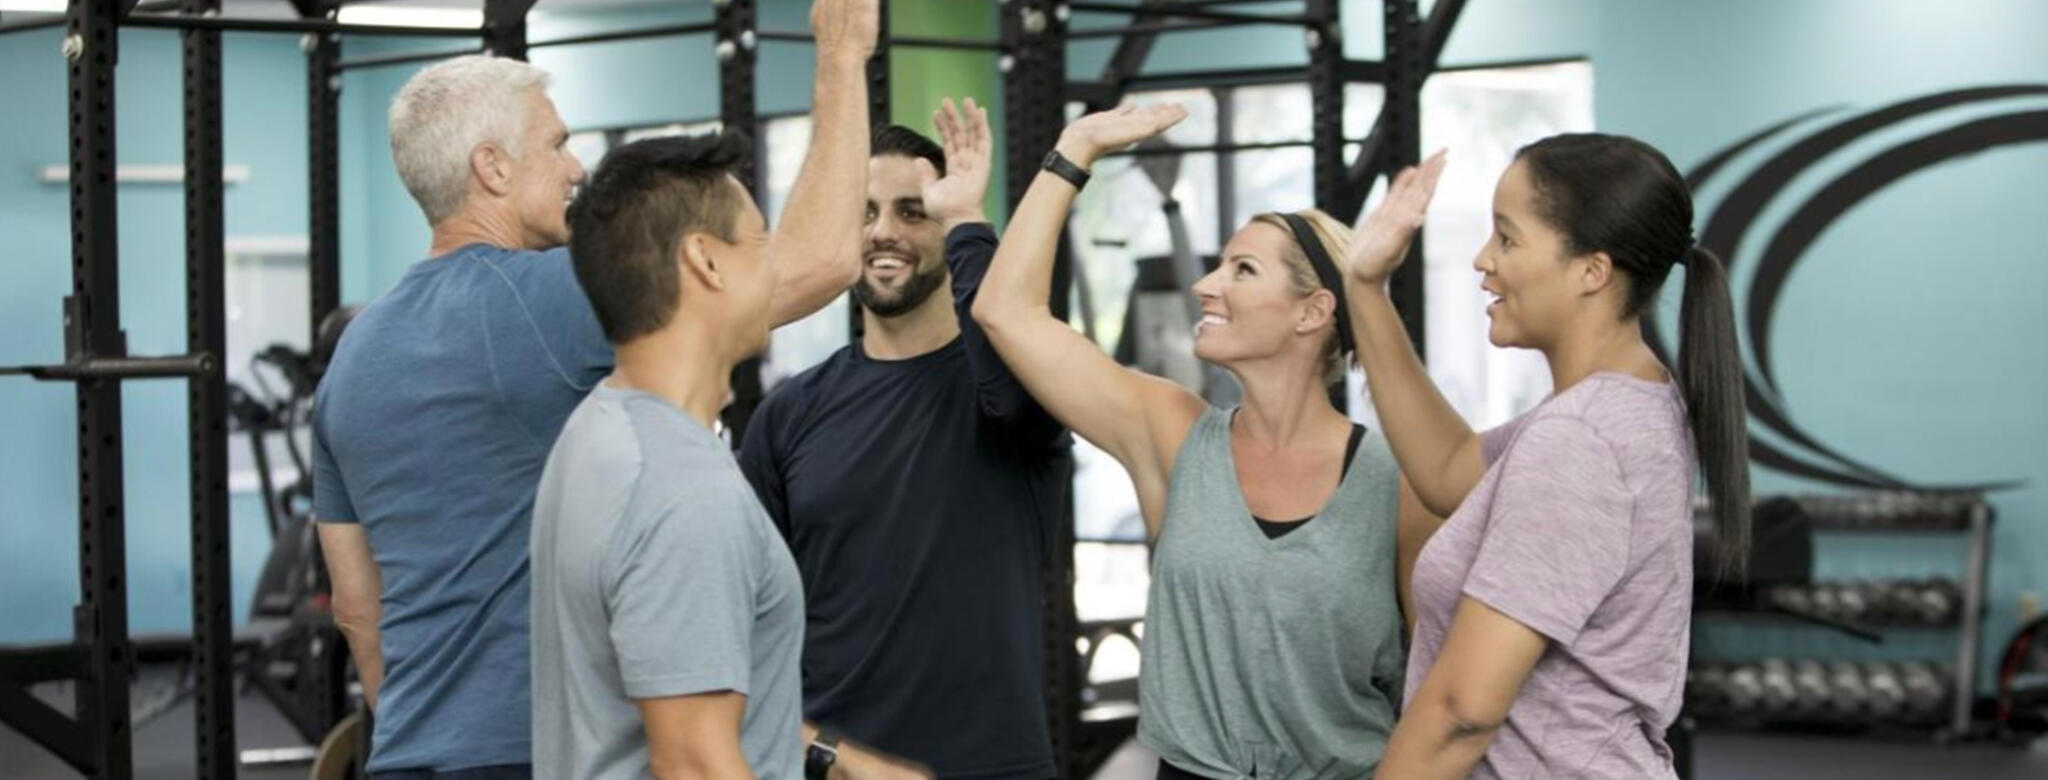 group of people high fiving in the gym